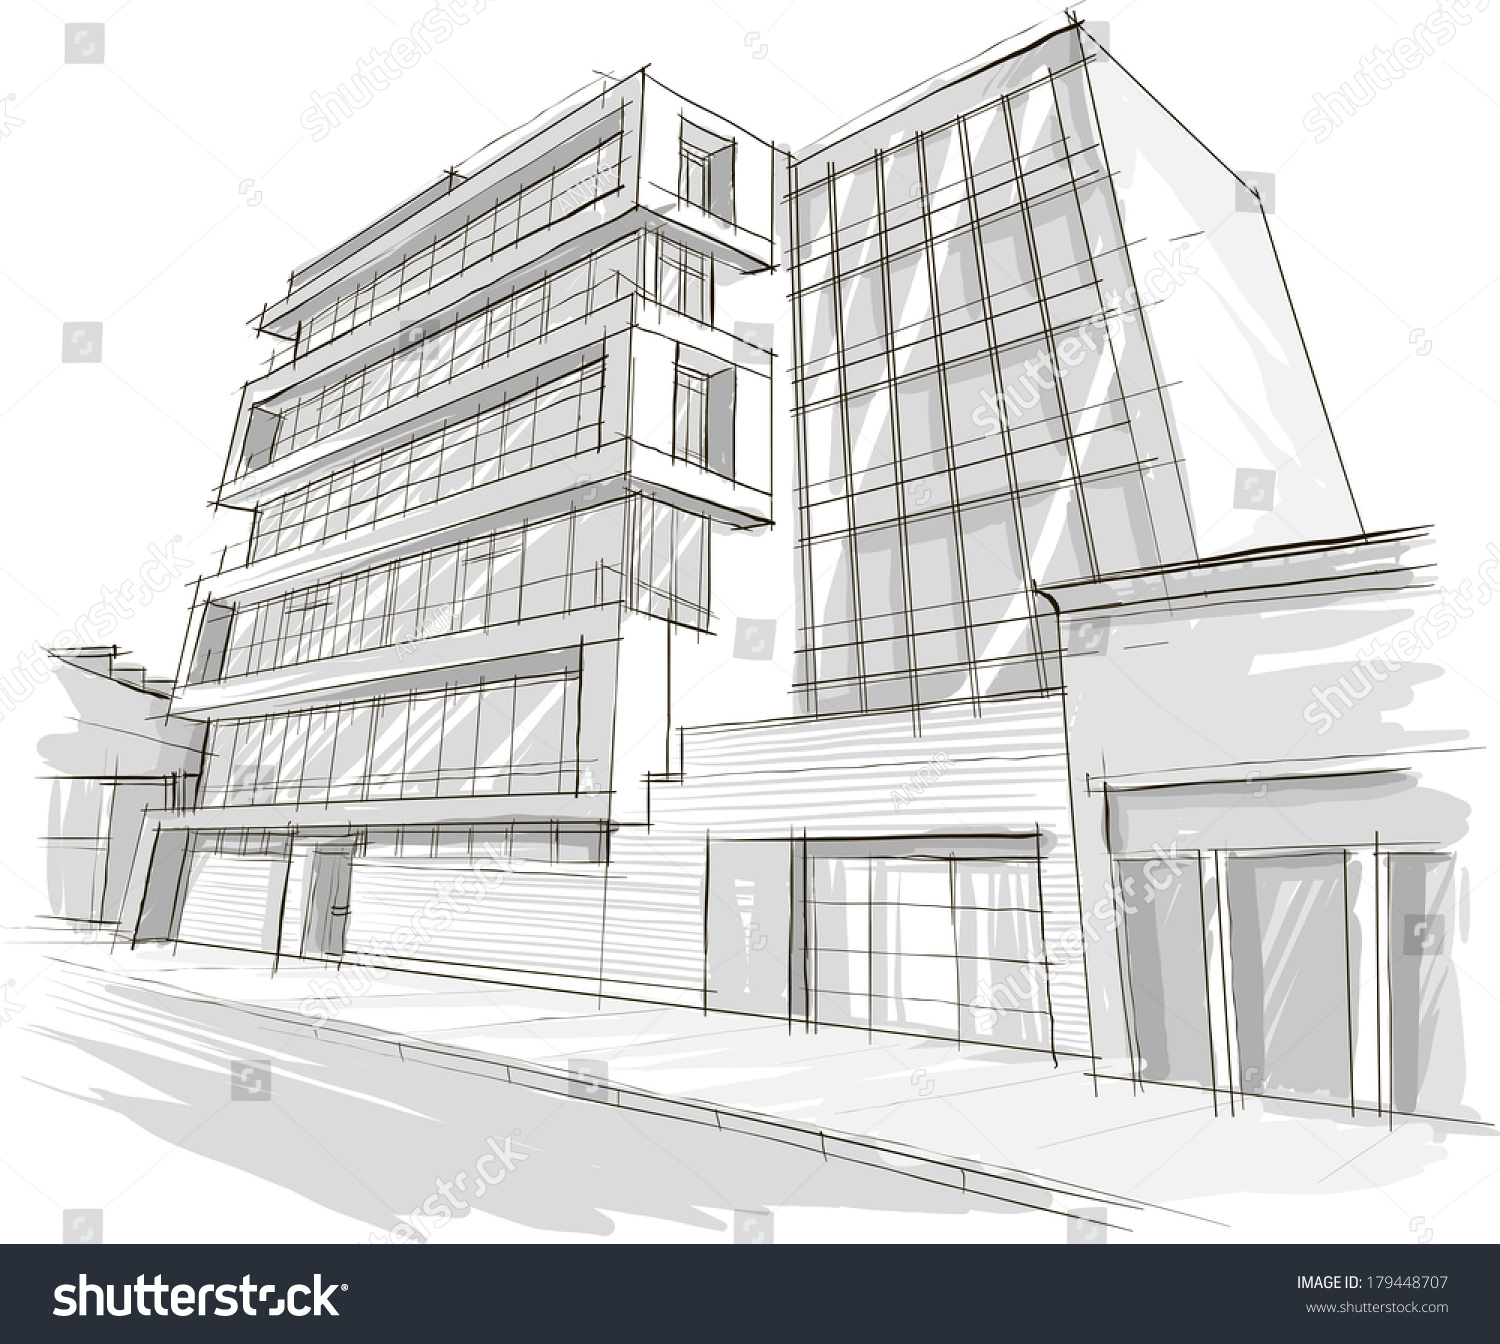 Architecture Sketch Drawing Of Building City Stock Vector